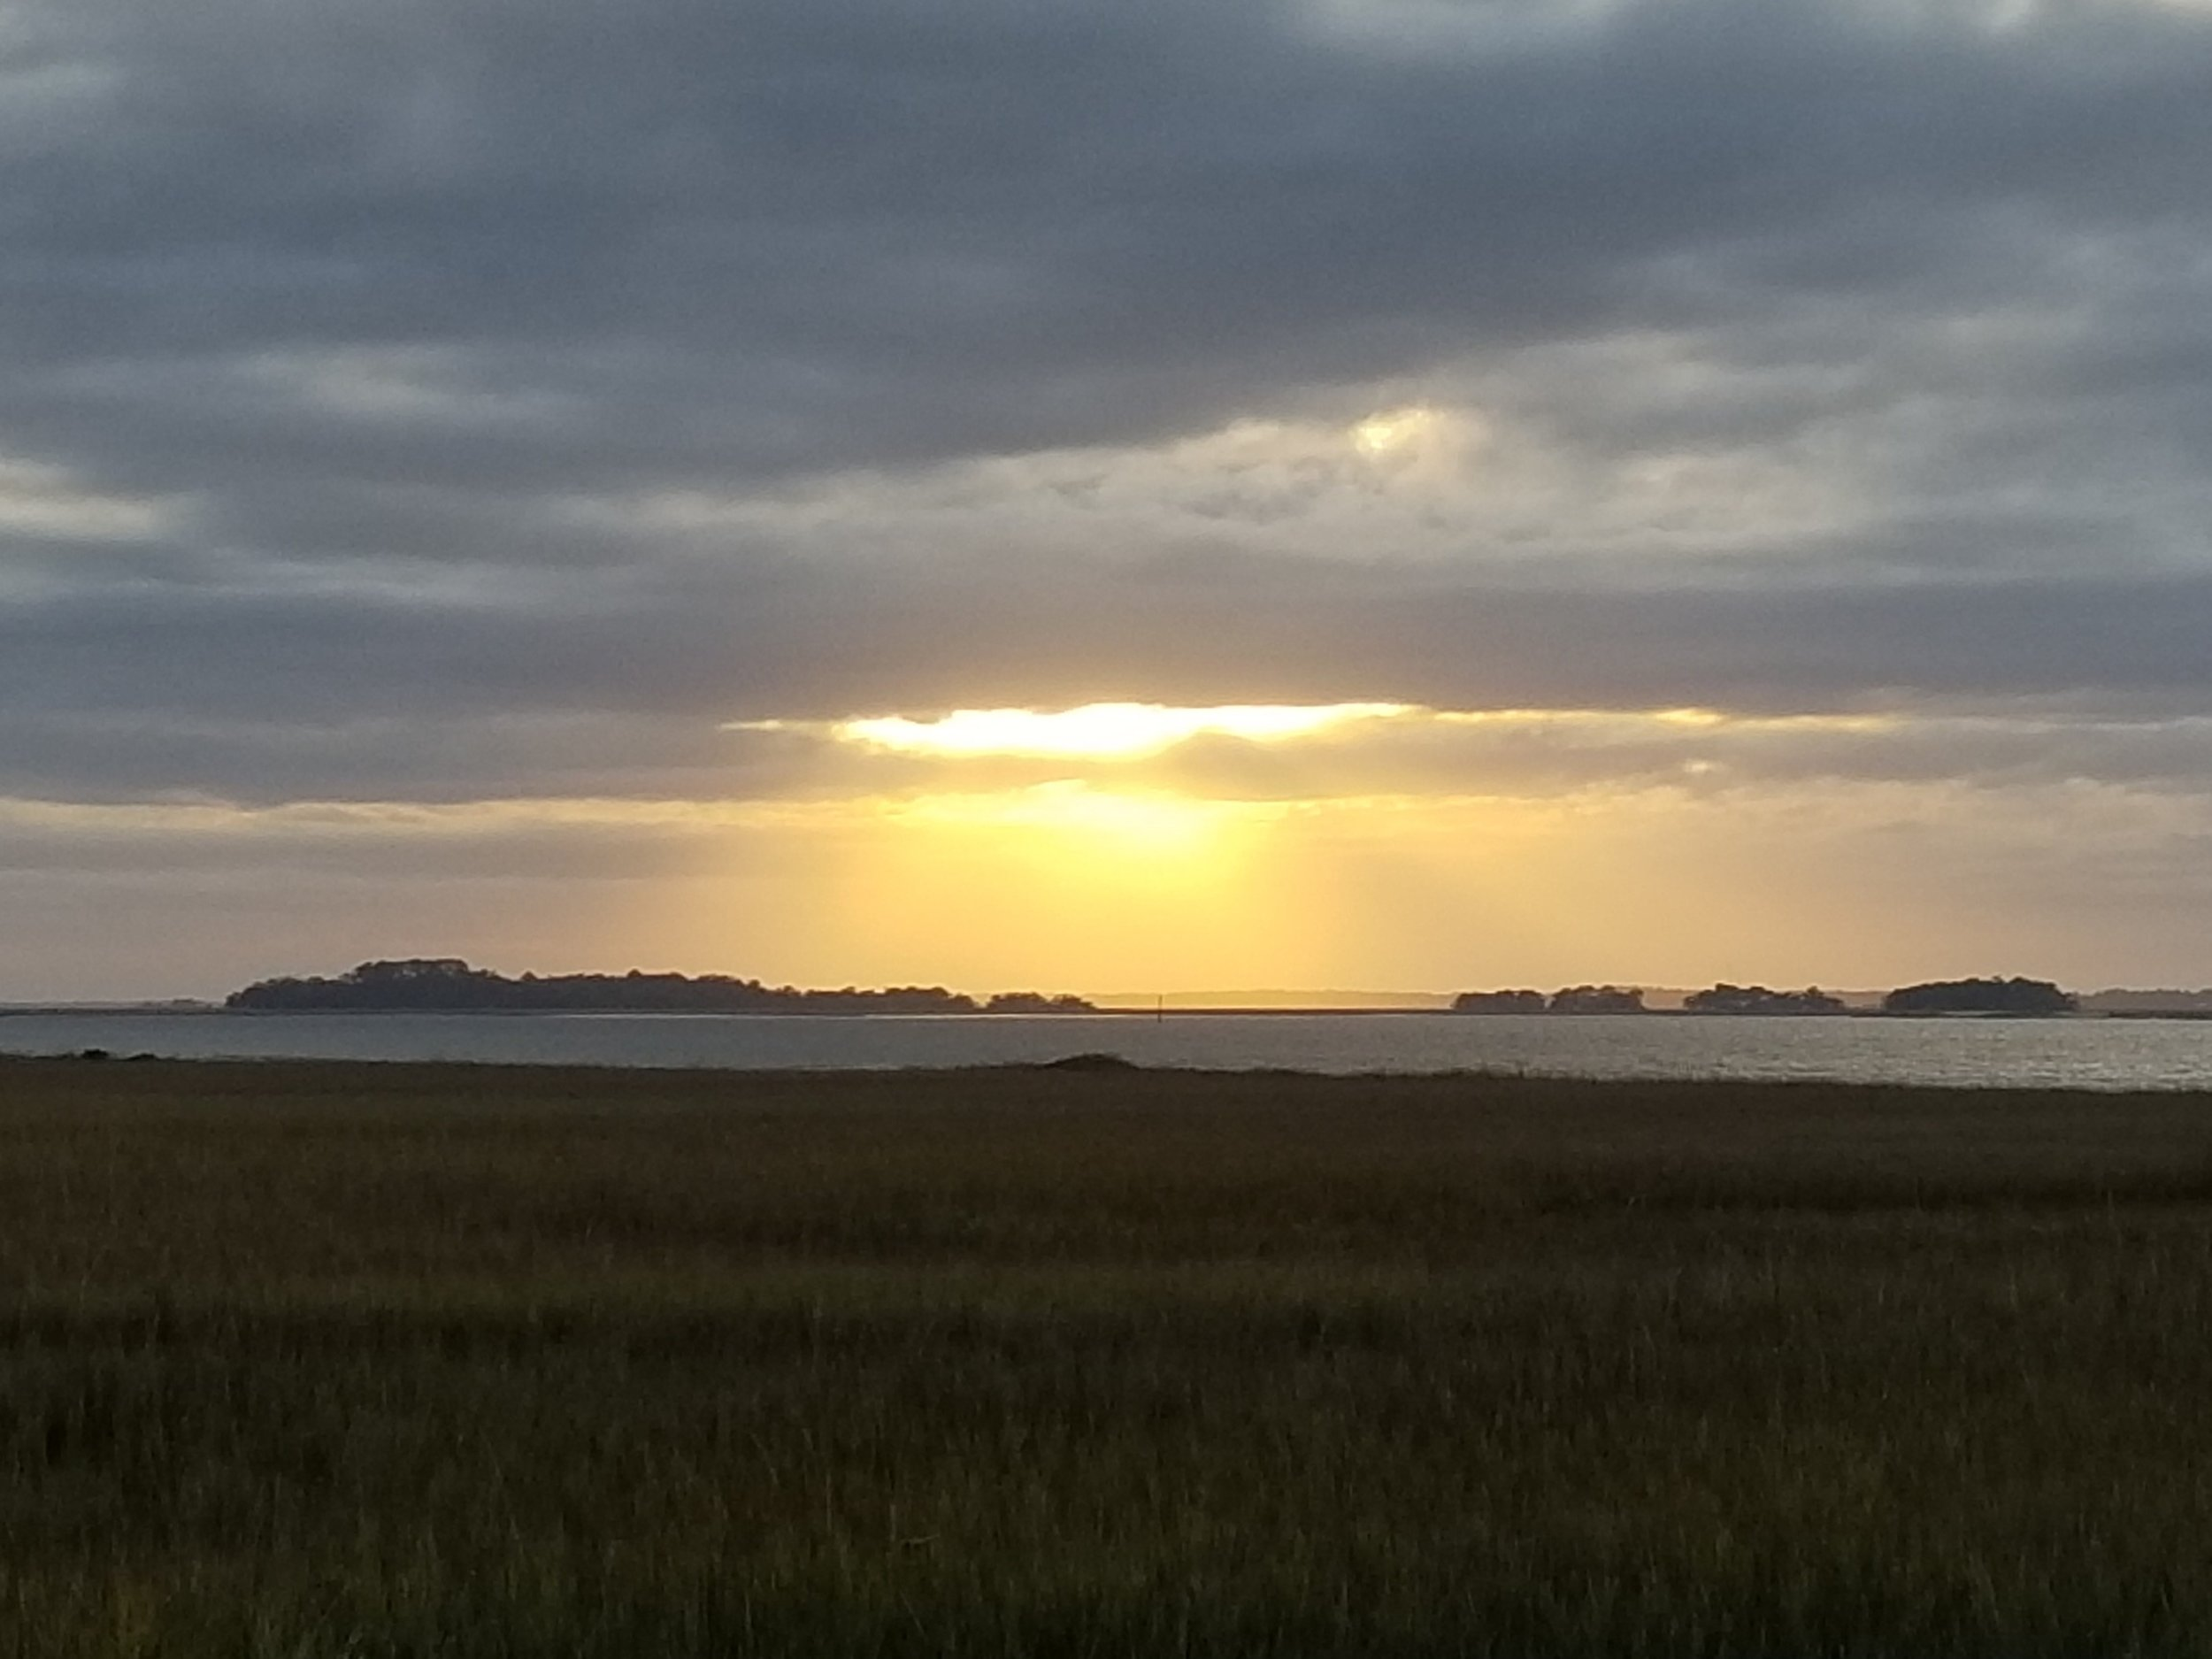 Sunset, looking west from Marsh Landing, Sapelo Island, GA.